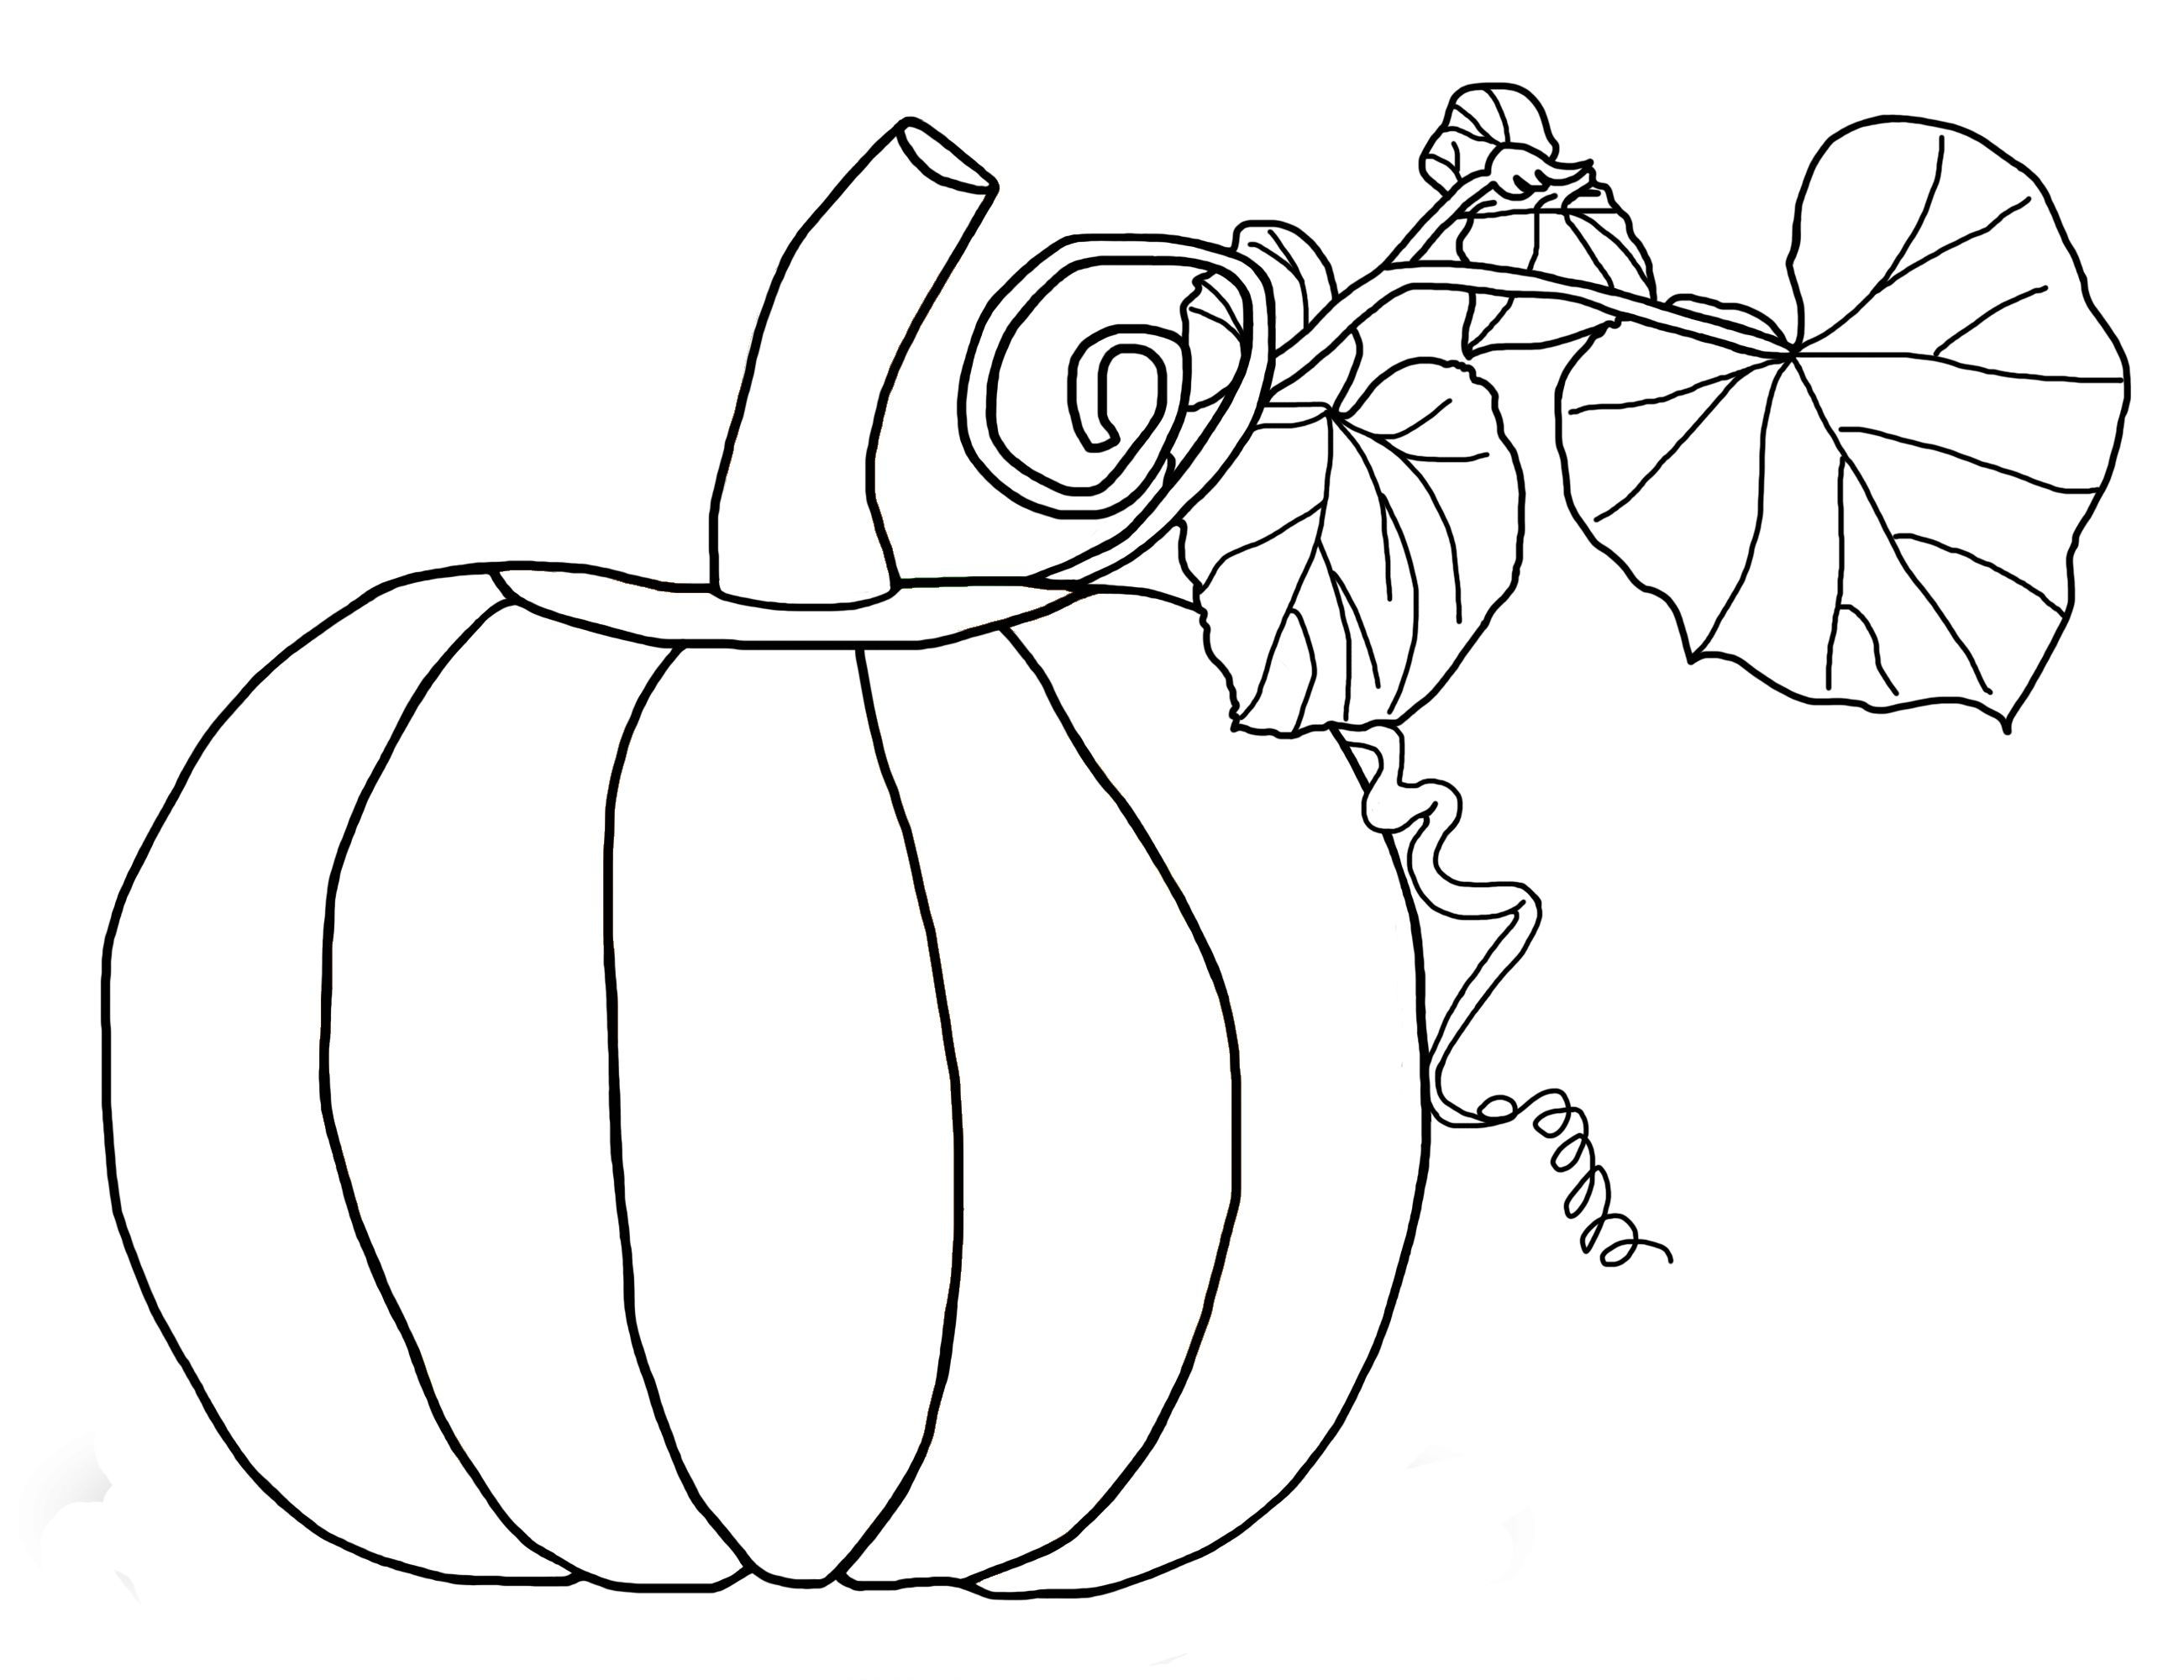 Free Printable Pumpkin Coloring Pages For Kids Pumpkin Coloring